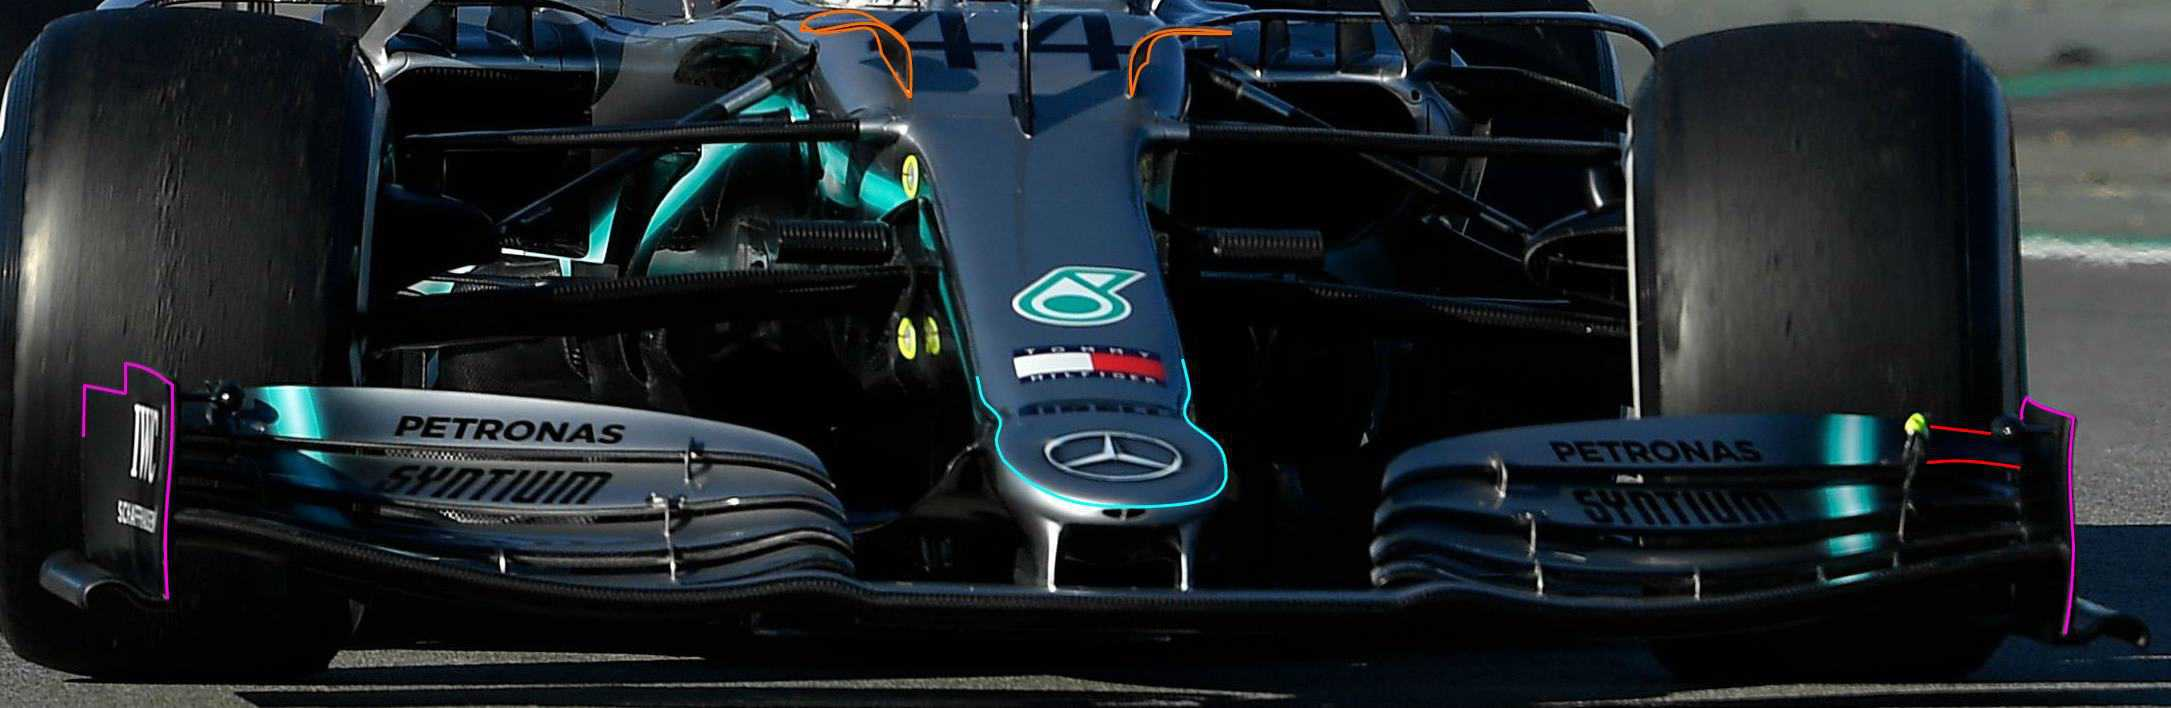 2019 Mercedes F1 W10 new nose cockpit ears front wing endplates Barcelona test 2 Day 1 Photo Mercedes MAXF1net